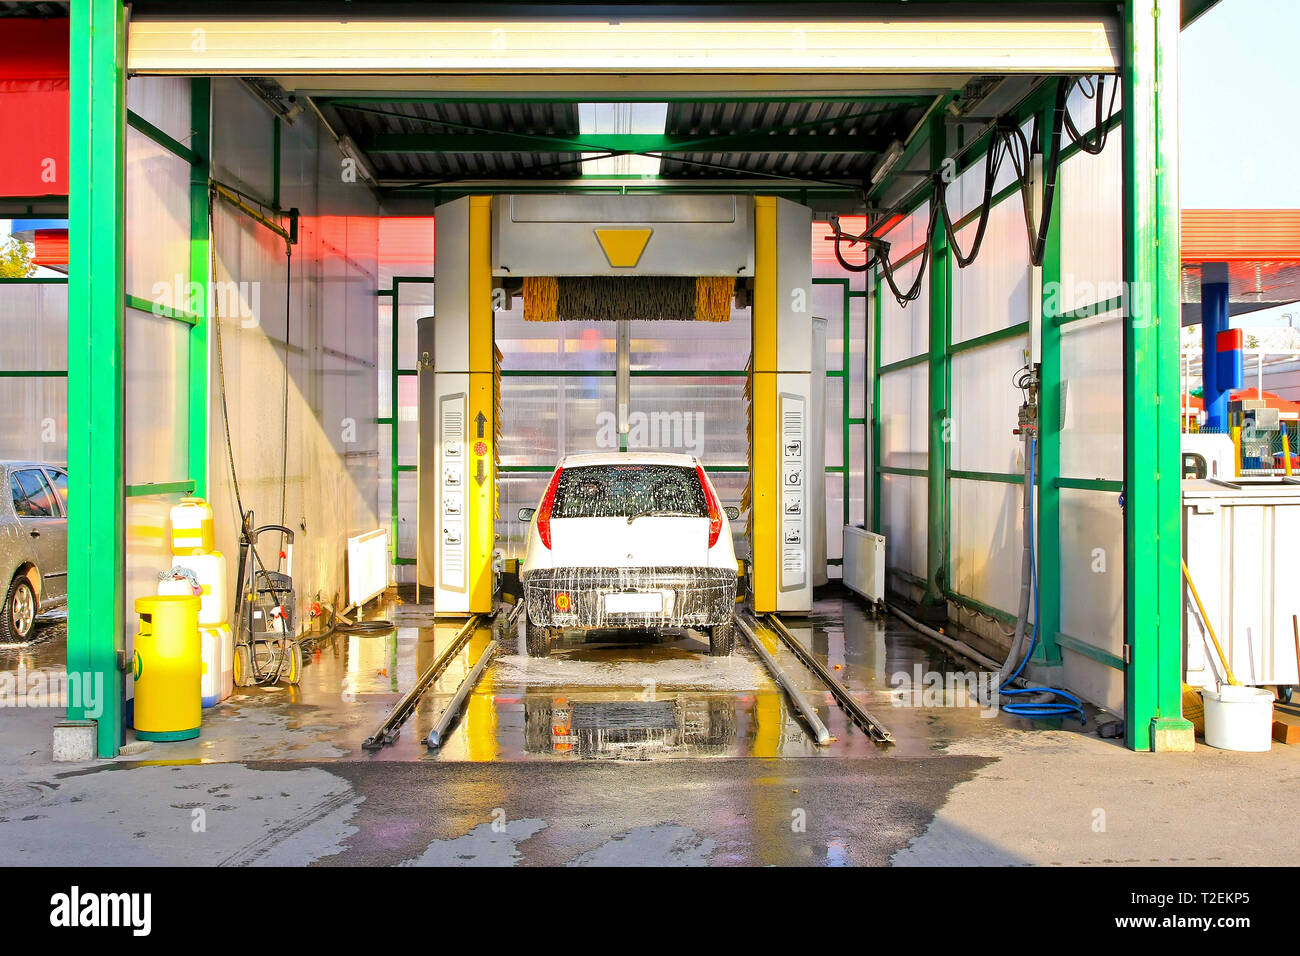 Drive Through Car Washing Equipment Stock Photos & Drive Through Car